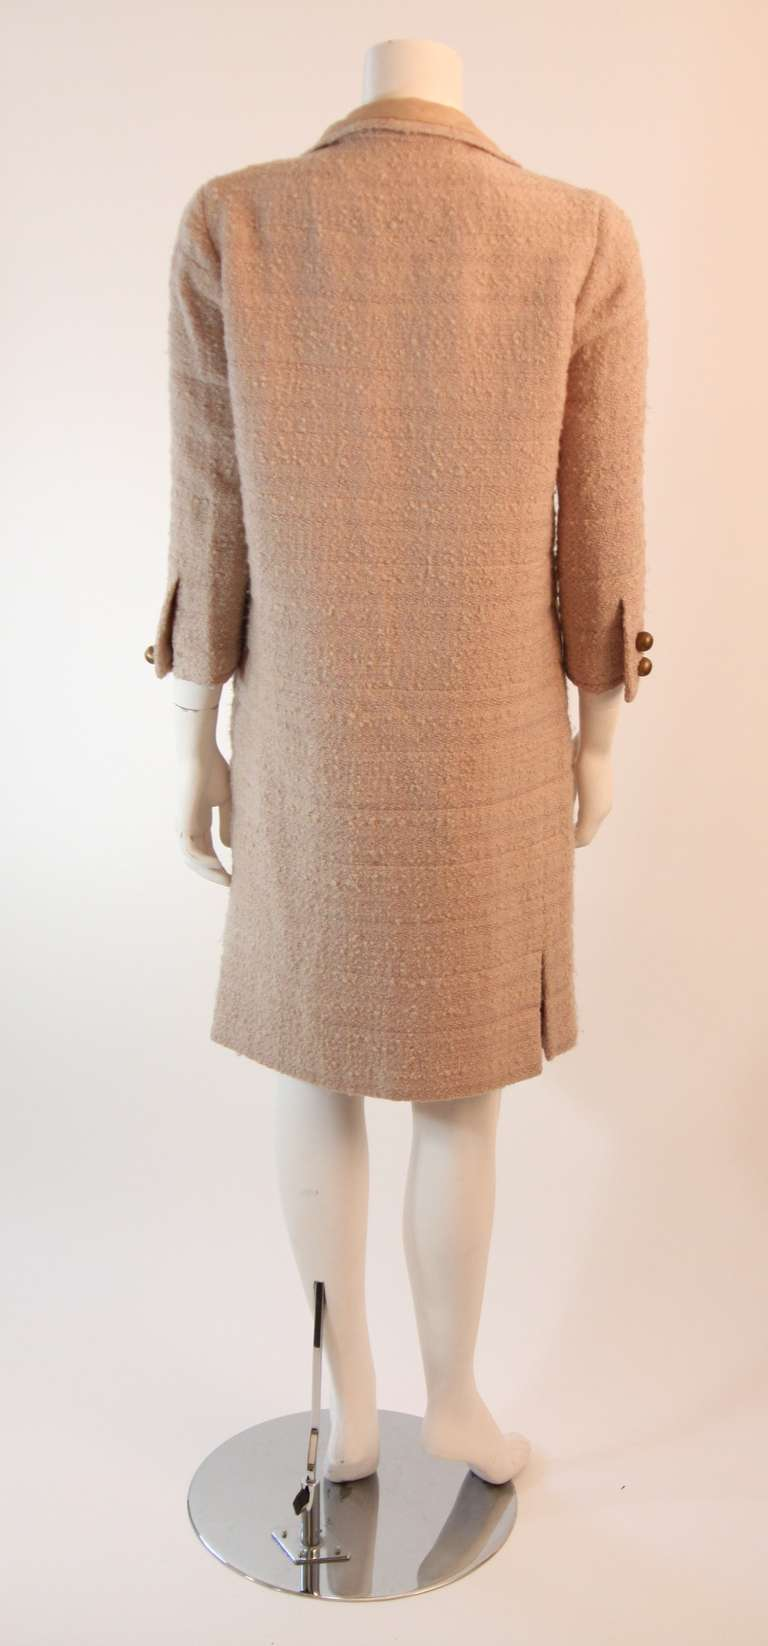 1960's Attributed to Chanel Couture Cream Boucle 3 Piece Tweed Suit 7